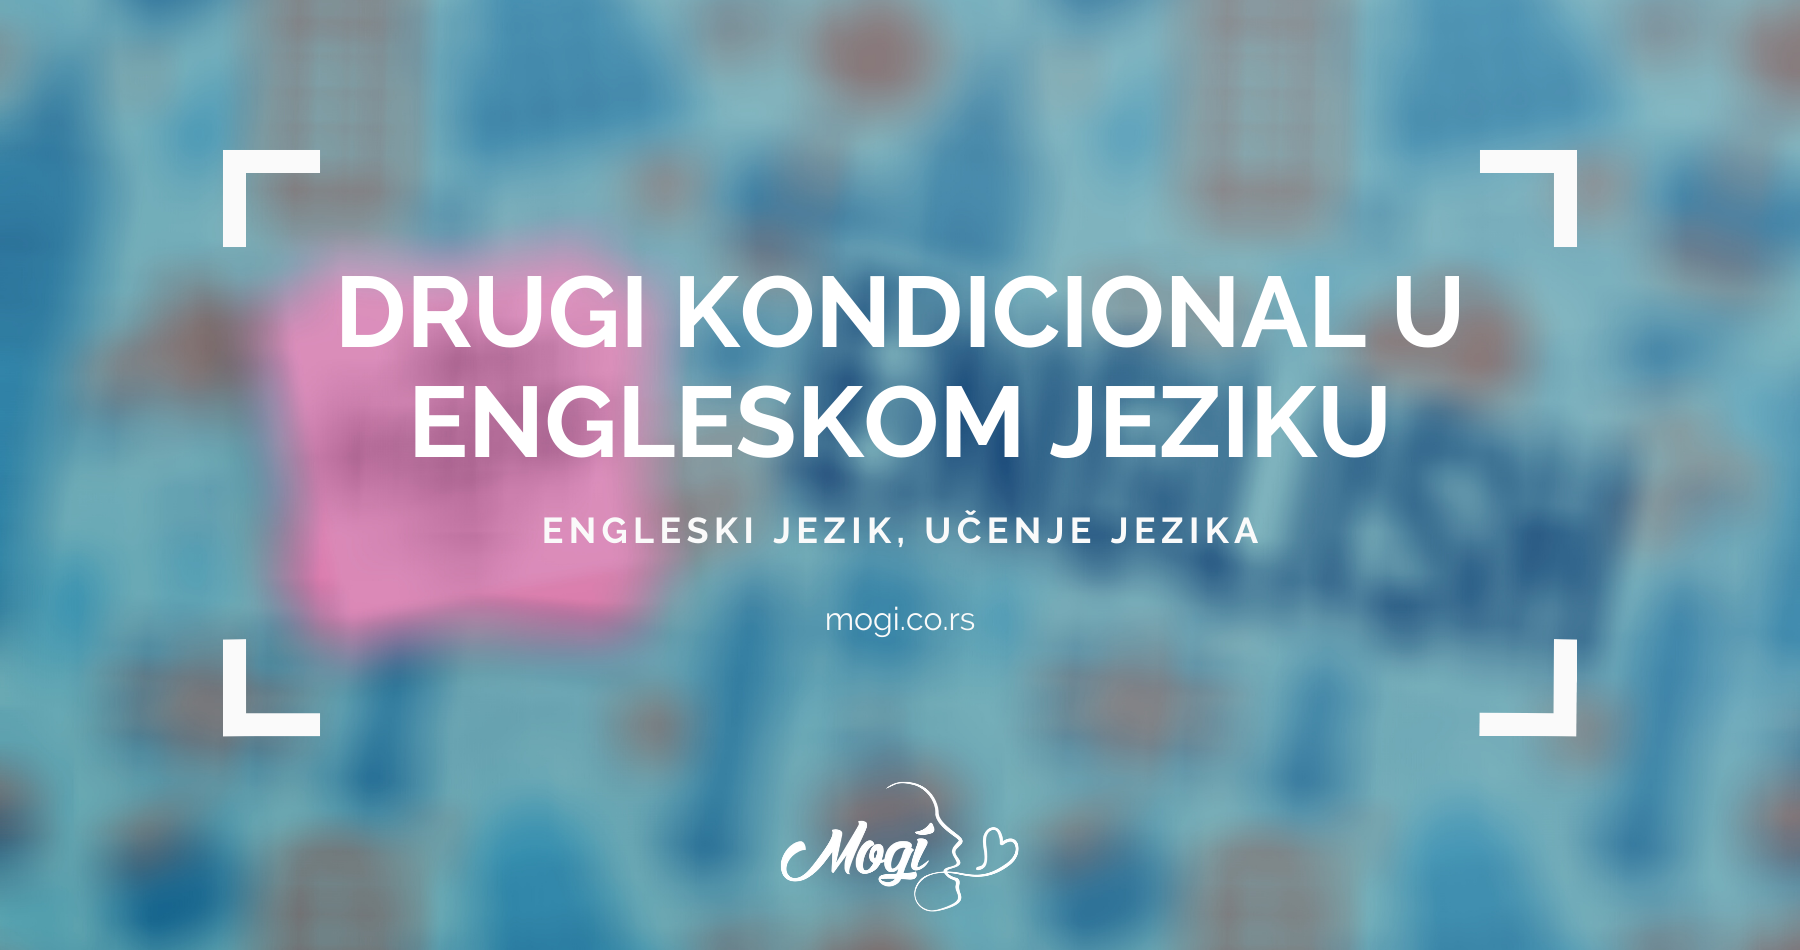 drugi kondicional